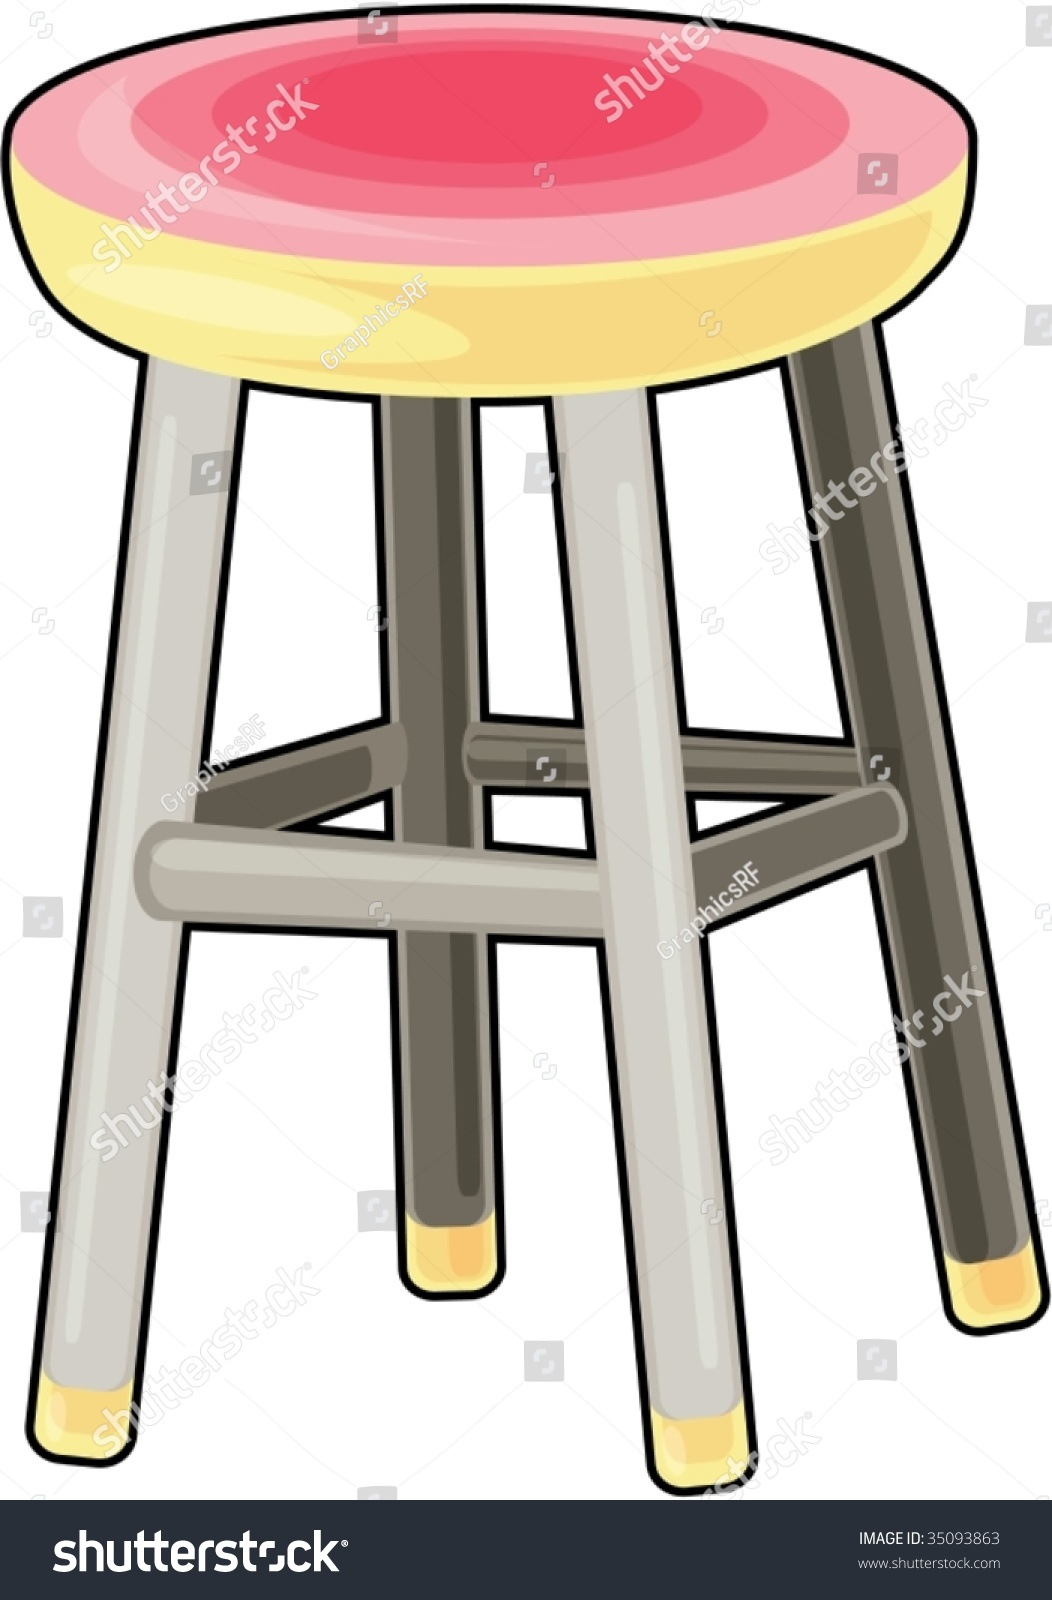 Illustration Of Bar Stool On White 35093863 Shutterstock : stock vector illustration of bar stool on white 35093863 from shutterstock.com size 1052 x 1600 jpeg 230kB